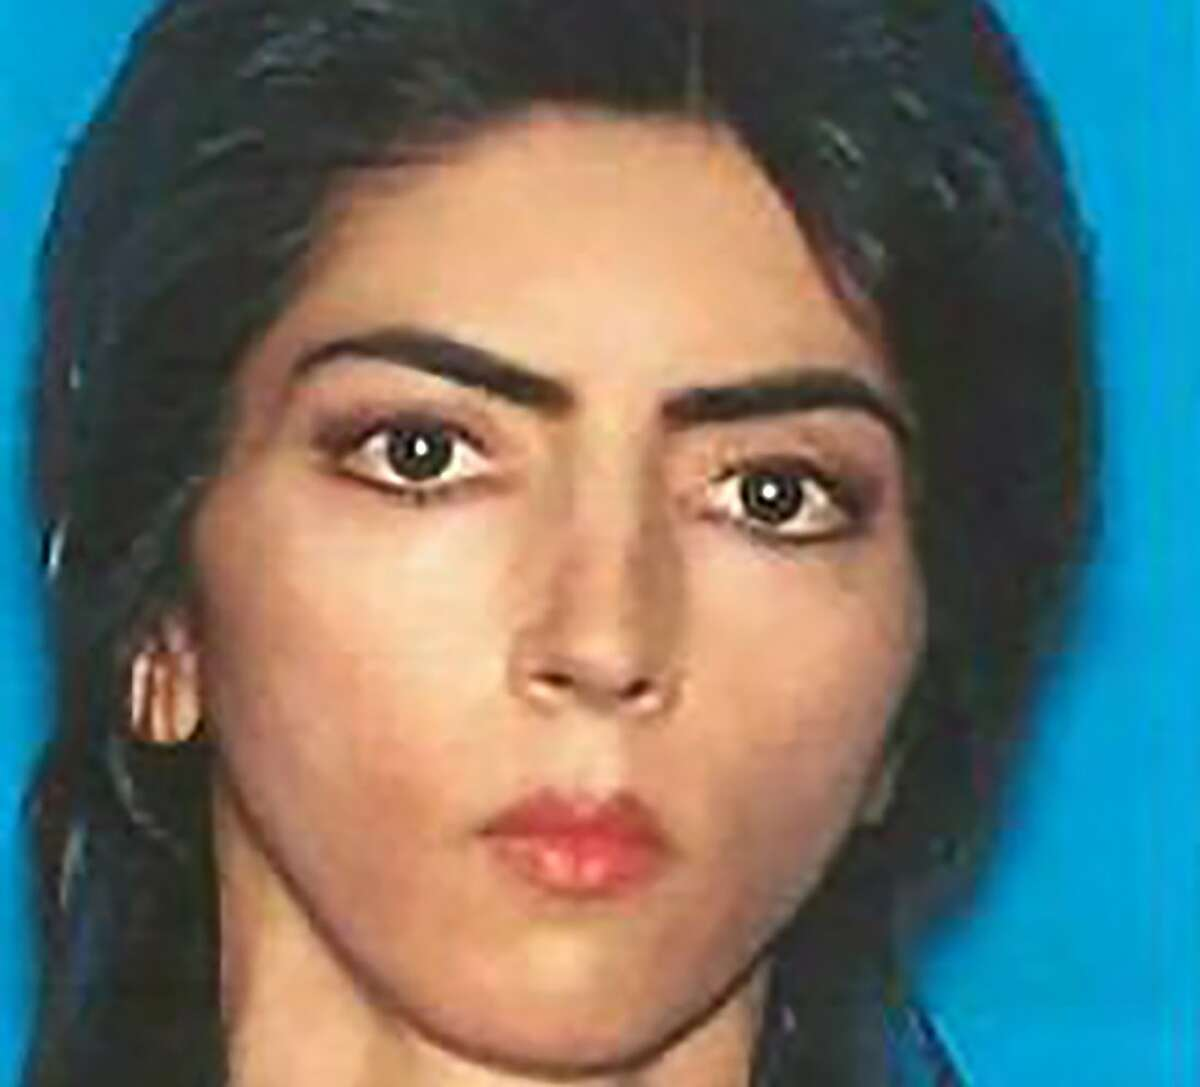 This undated photo obtained April 4, 2018 courtesy of the San Bruno Police Department shows shooting suspect Nasim Najafi Aghdam.